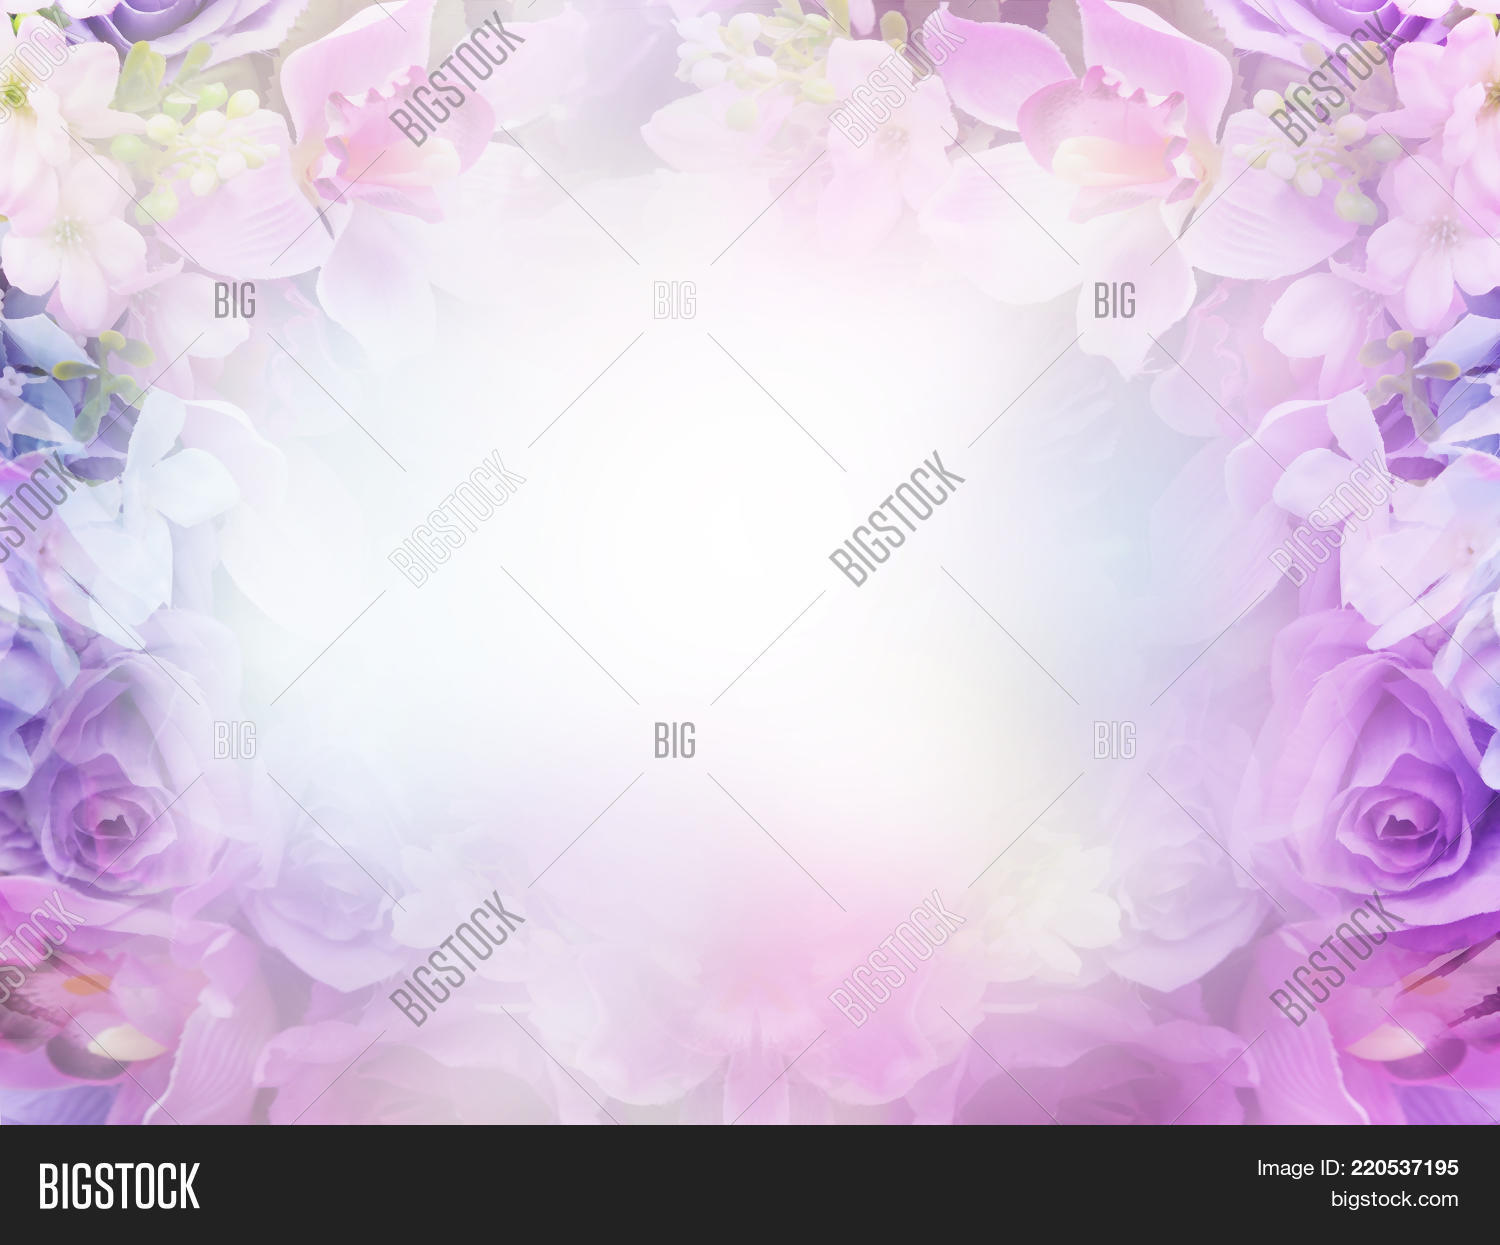 Floral Abstract Pastel Image Photo Free Trial Bigstock